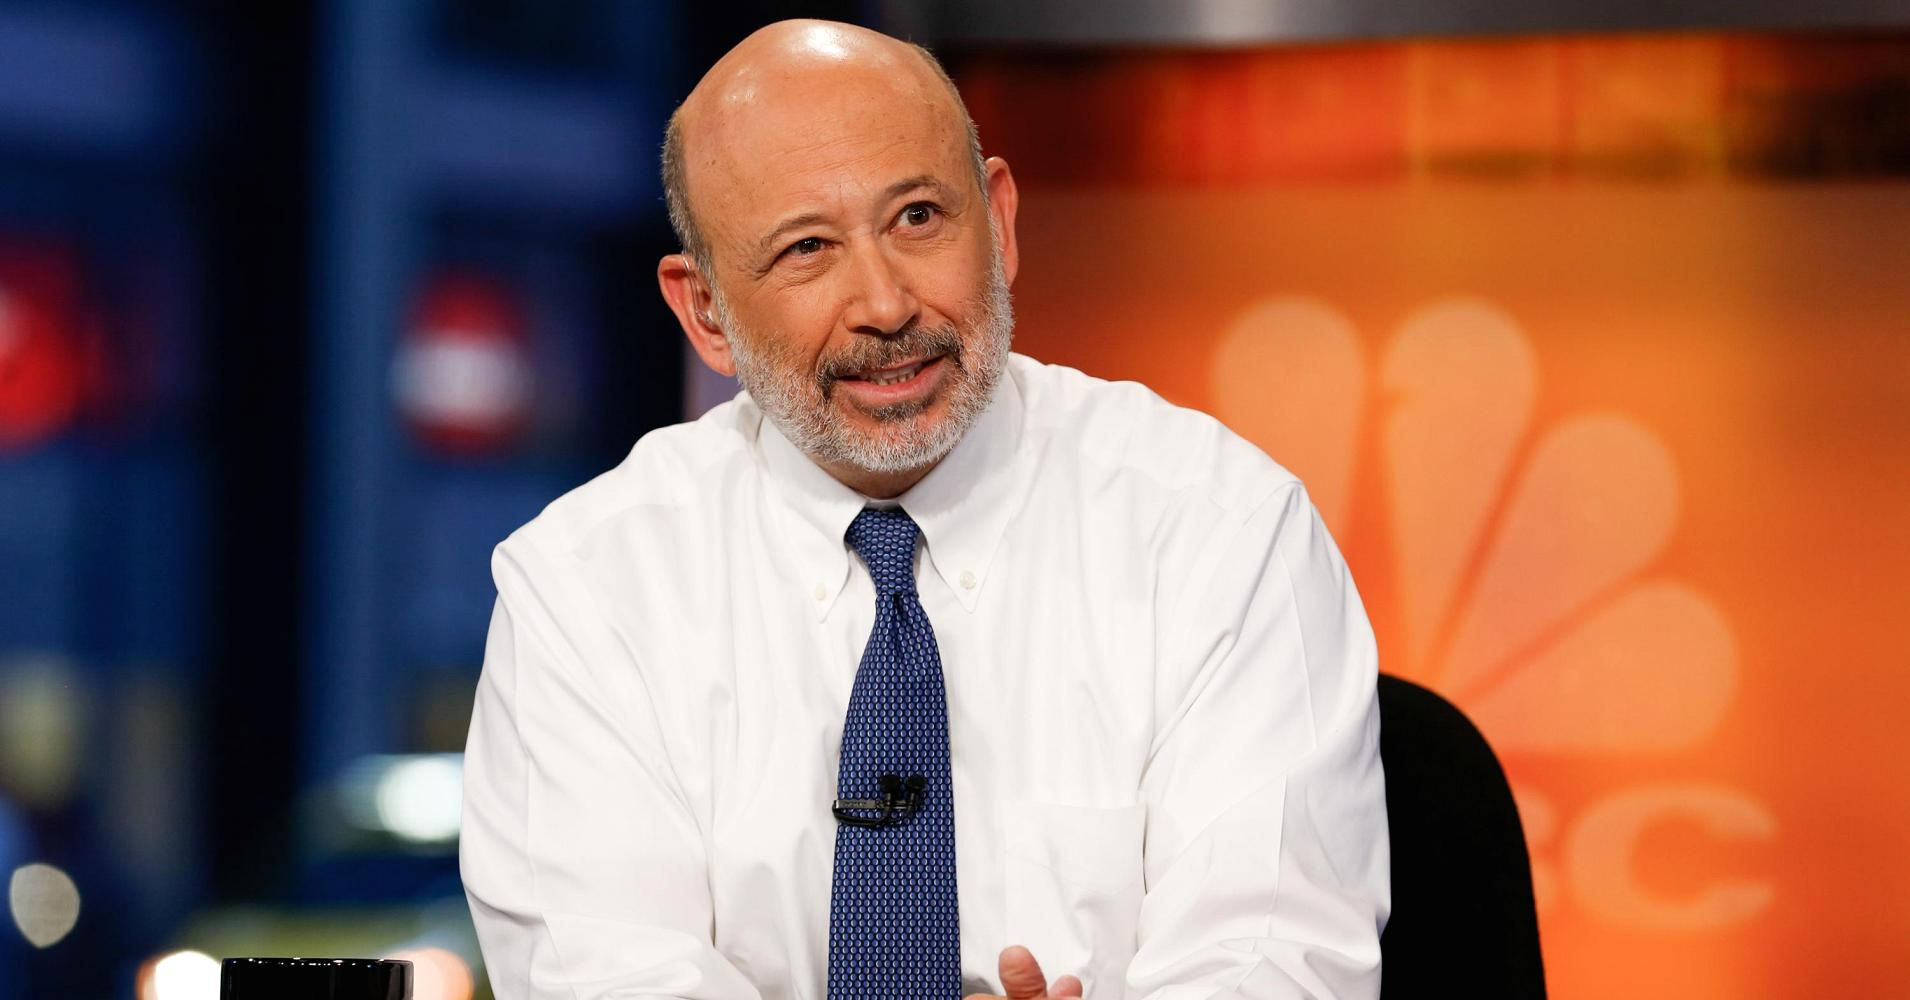 Goldman Sachs CEO Not Against Bitcoin